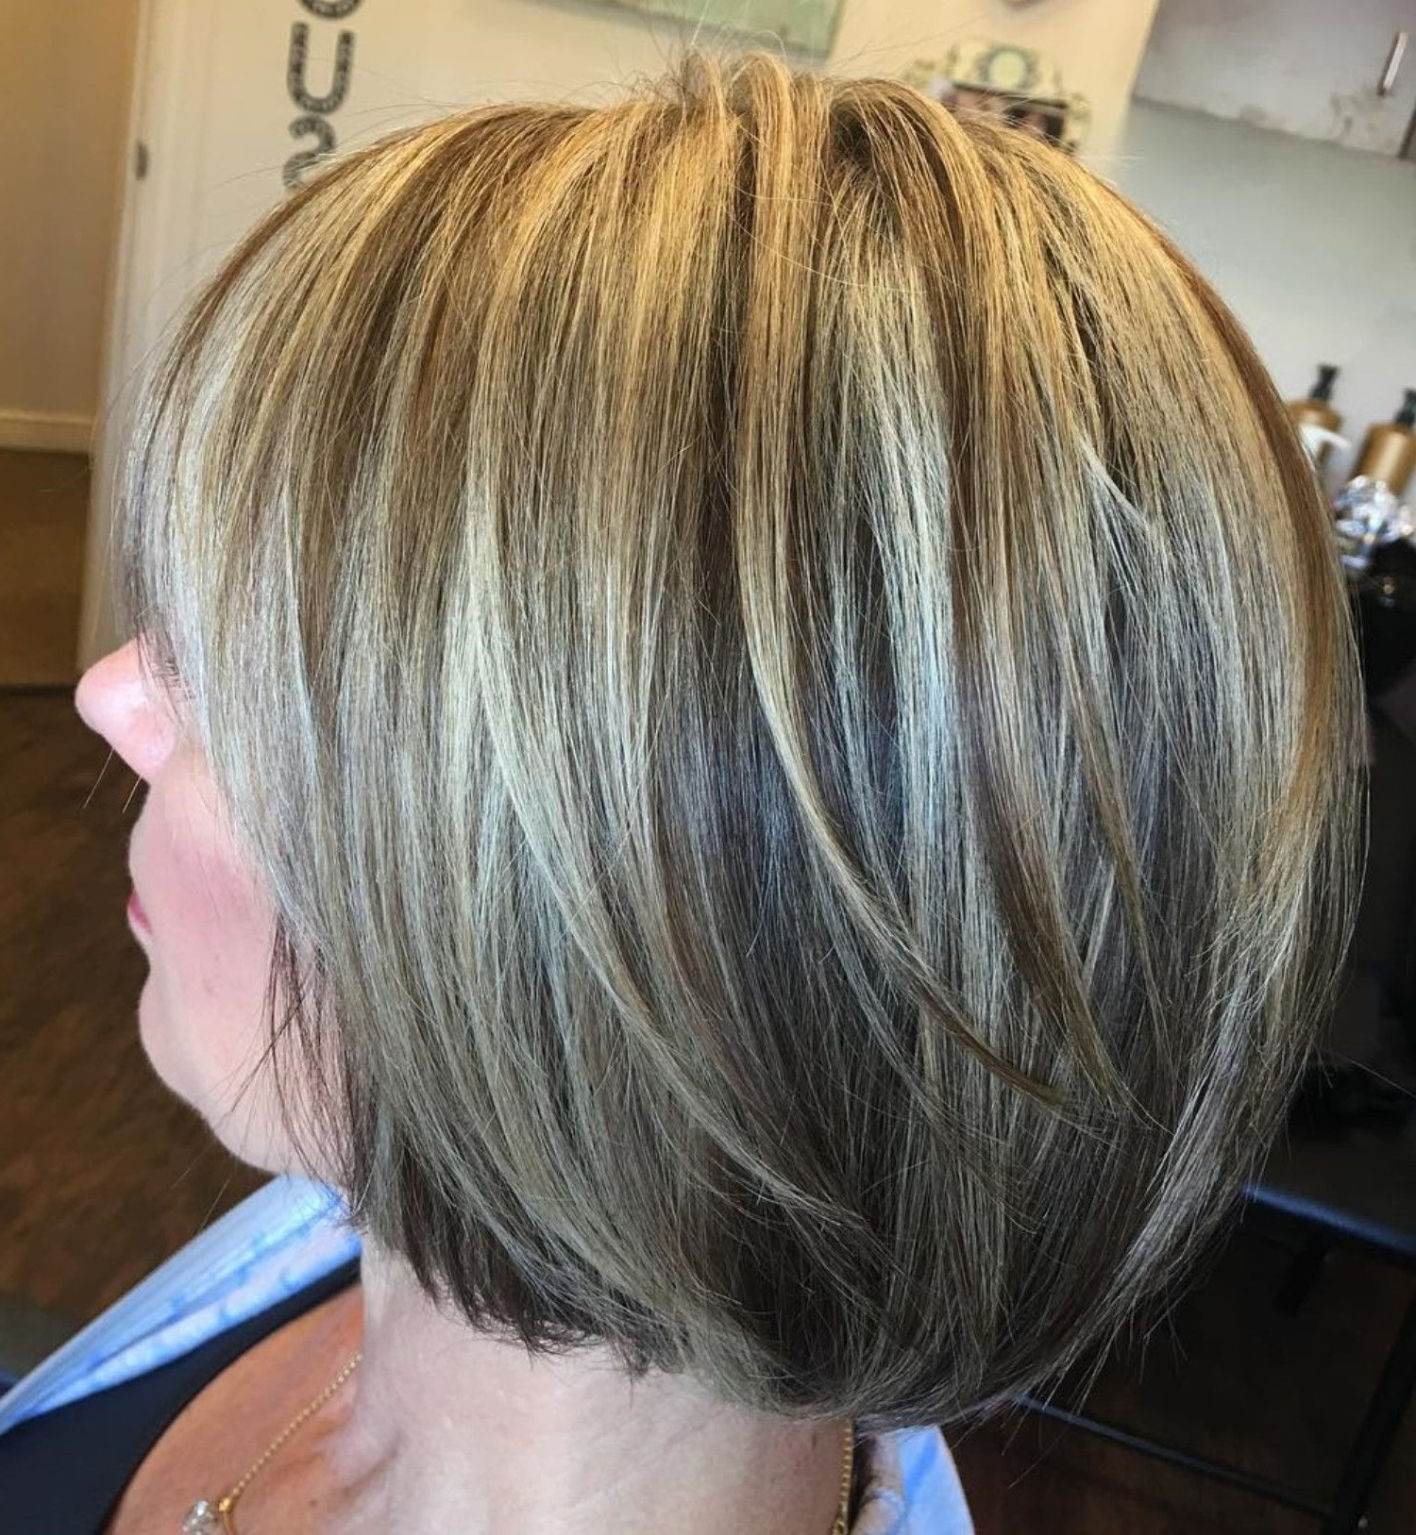 Well Liked Bronde Bob With Highlighted Bangs With 90 Classy And Simple Short Hairstyles For Women Over (View 9 of 20)